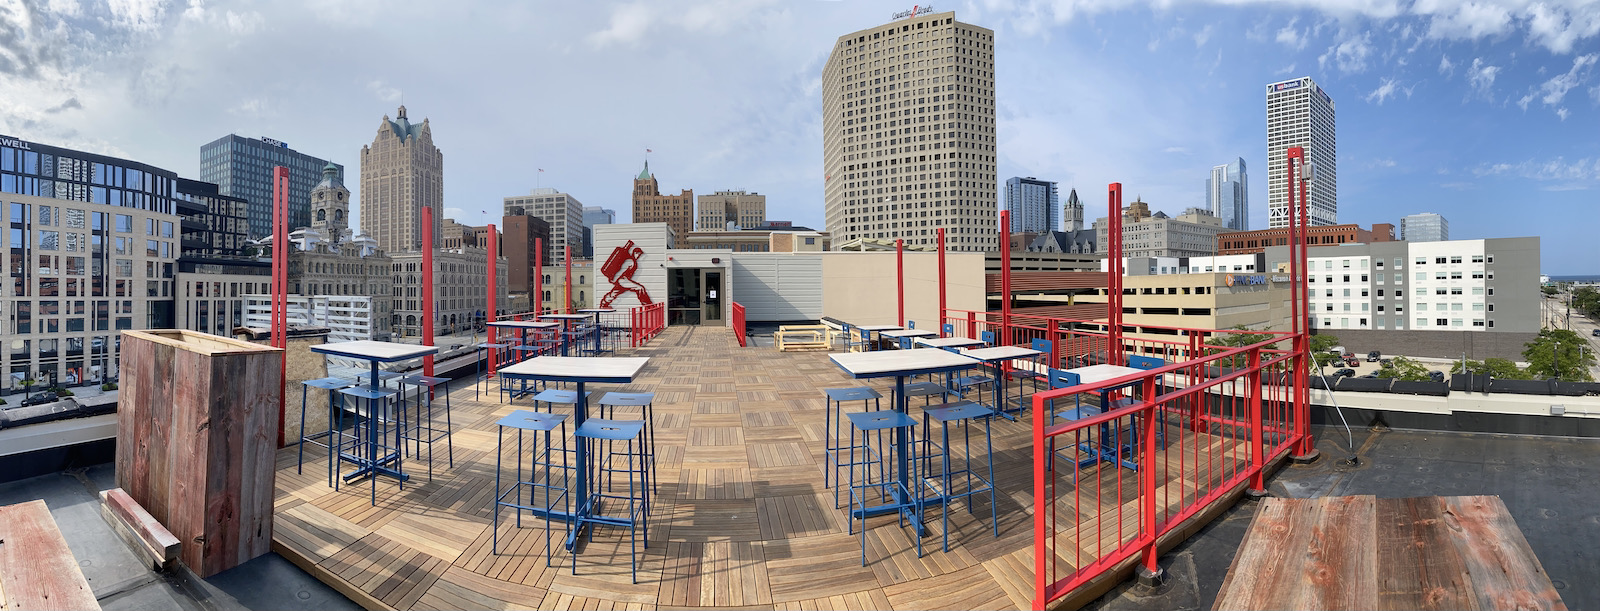 Pano of rooftop